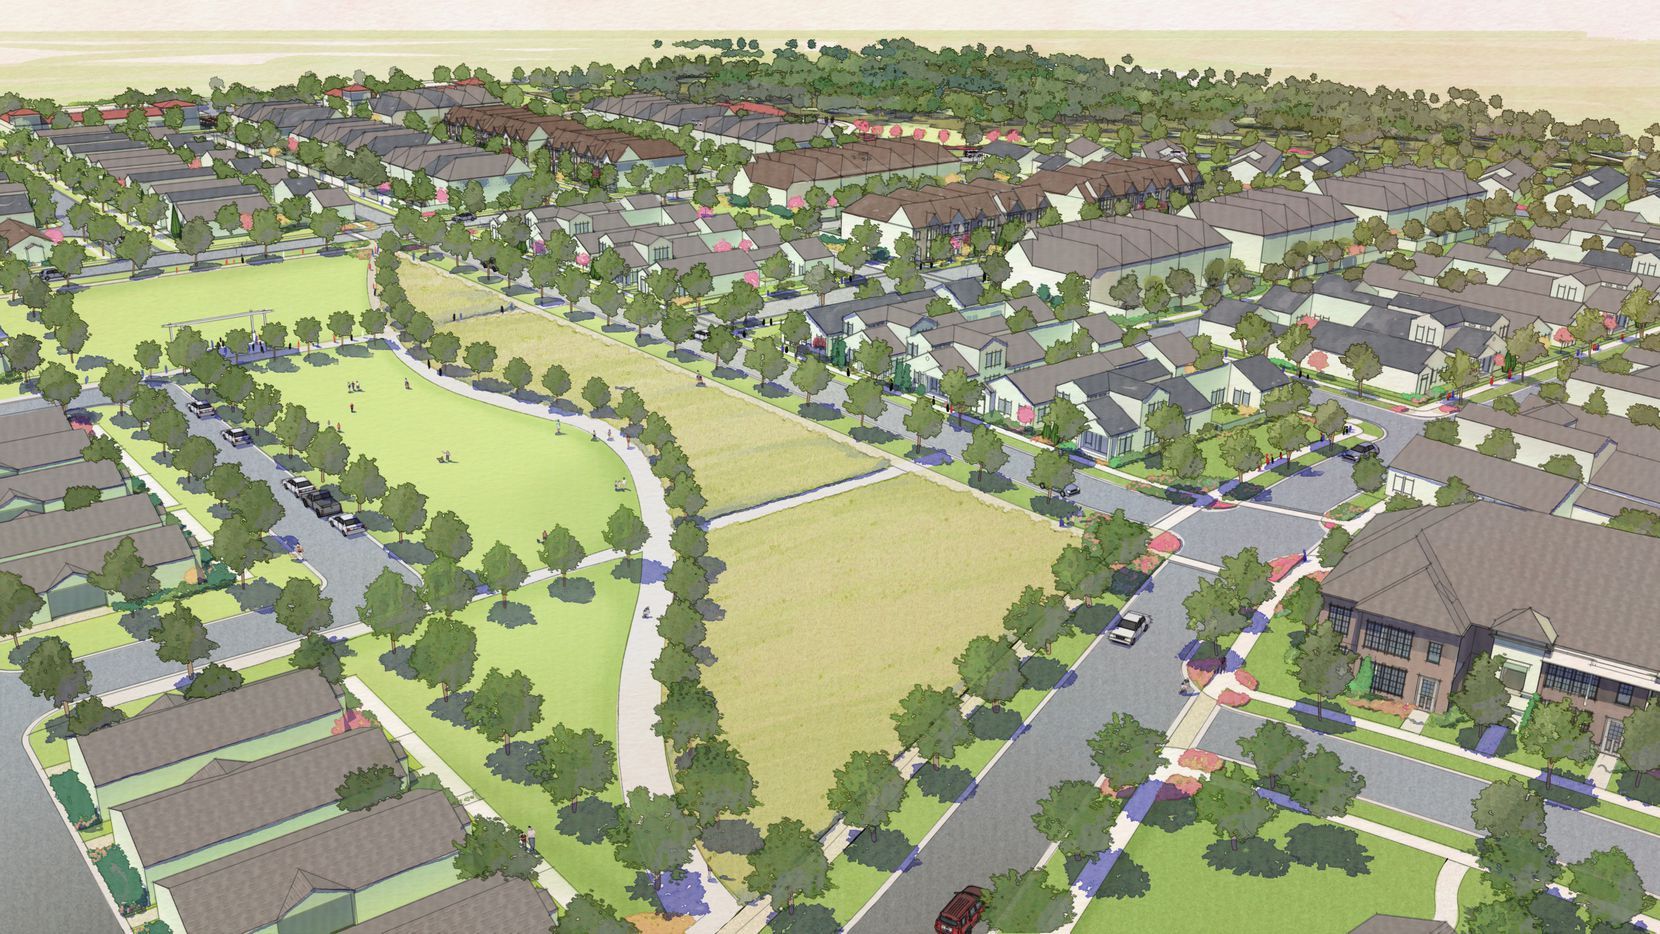 The Wyrick farm on Shiloh Road will be developed for a 600-home neighborhood.